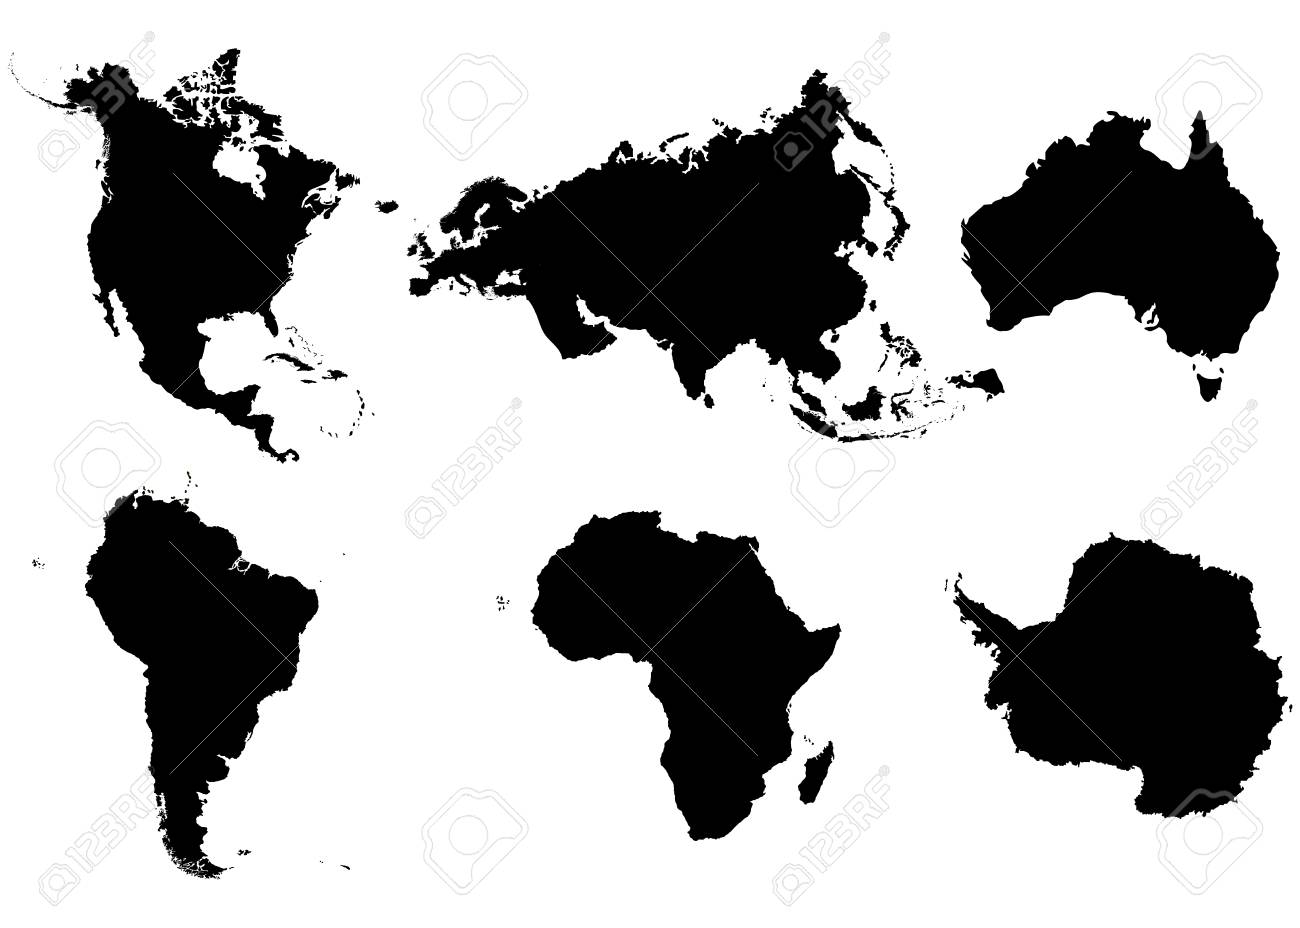 continents north america south america eurasia africa antarctica